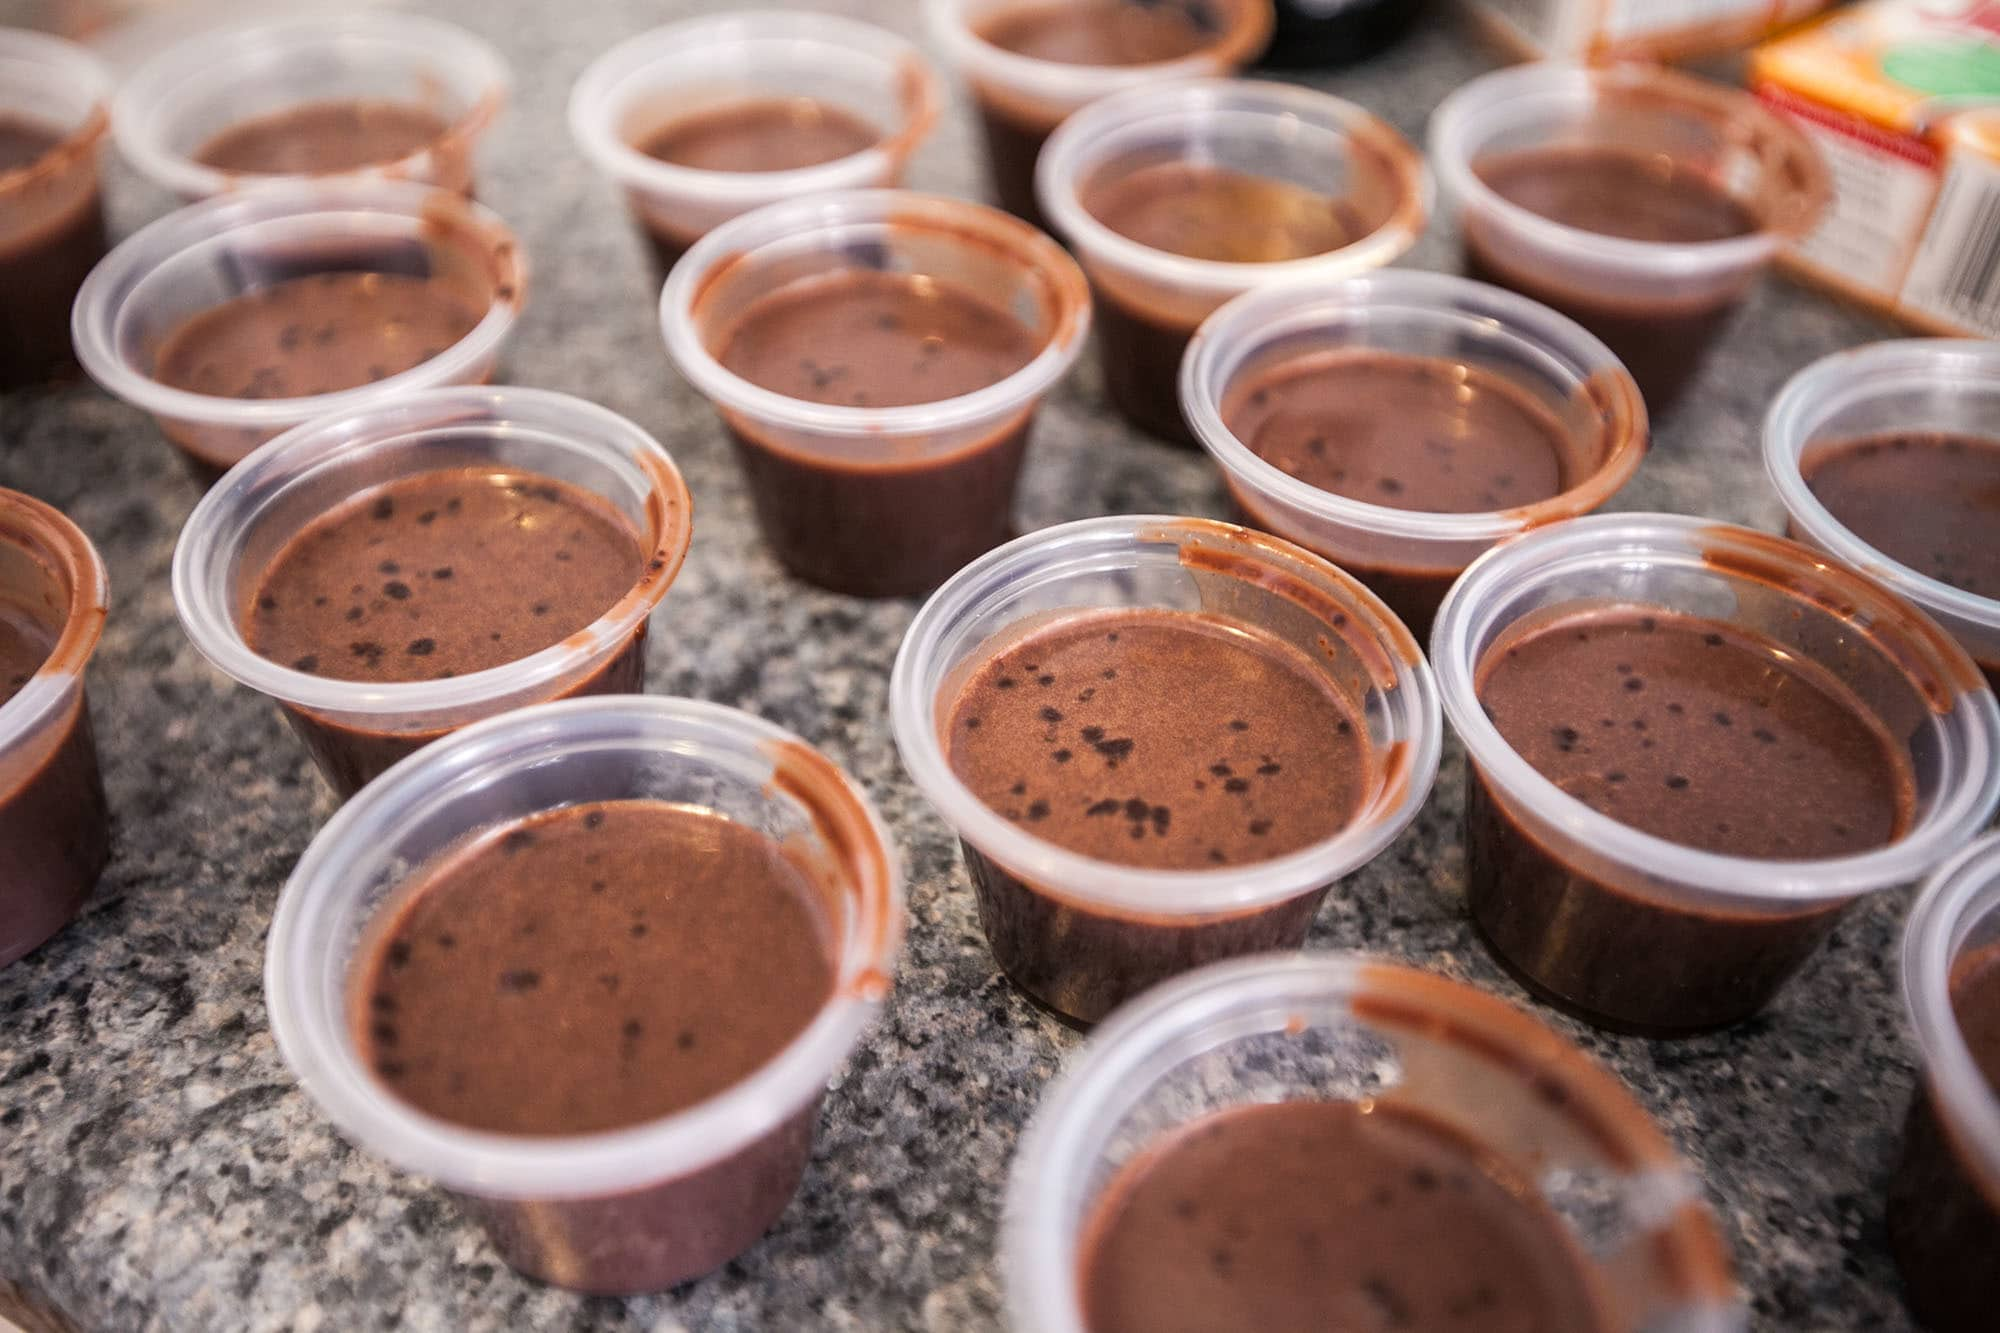 Mudslide pudding shot recipe with chocolate pudding, Baileys Irish Cream, and Kahlúa.